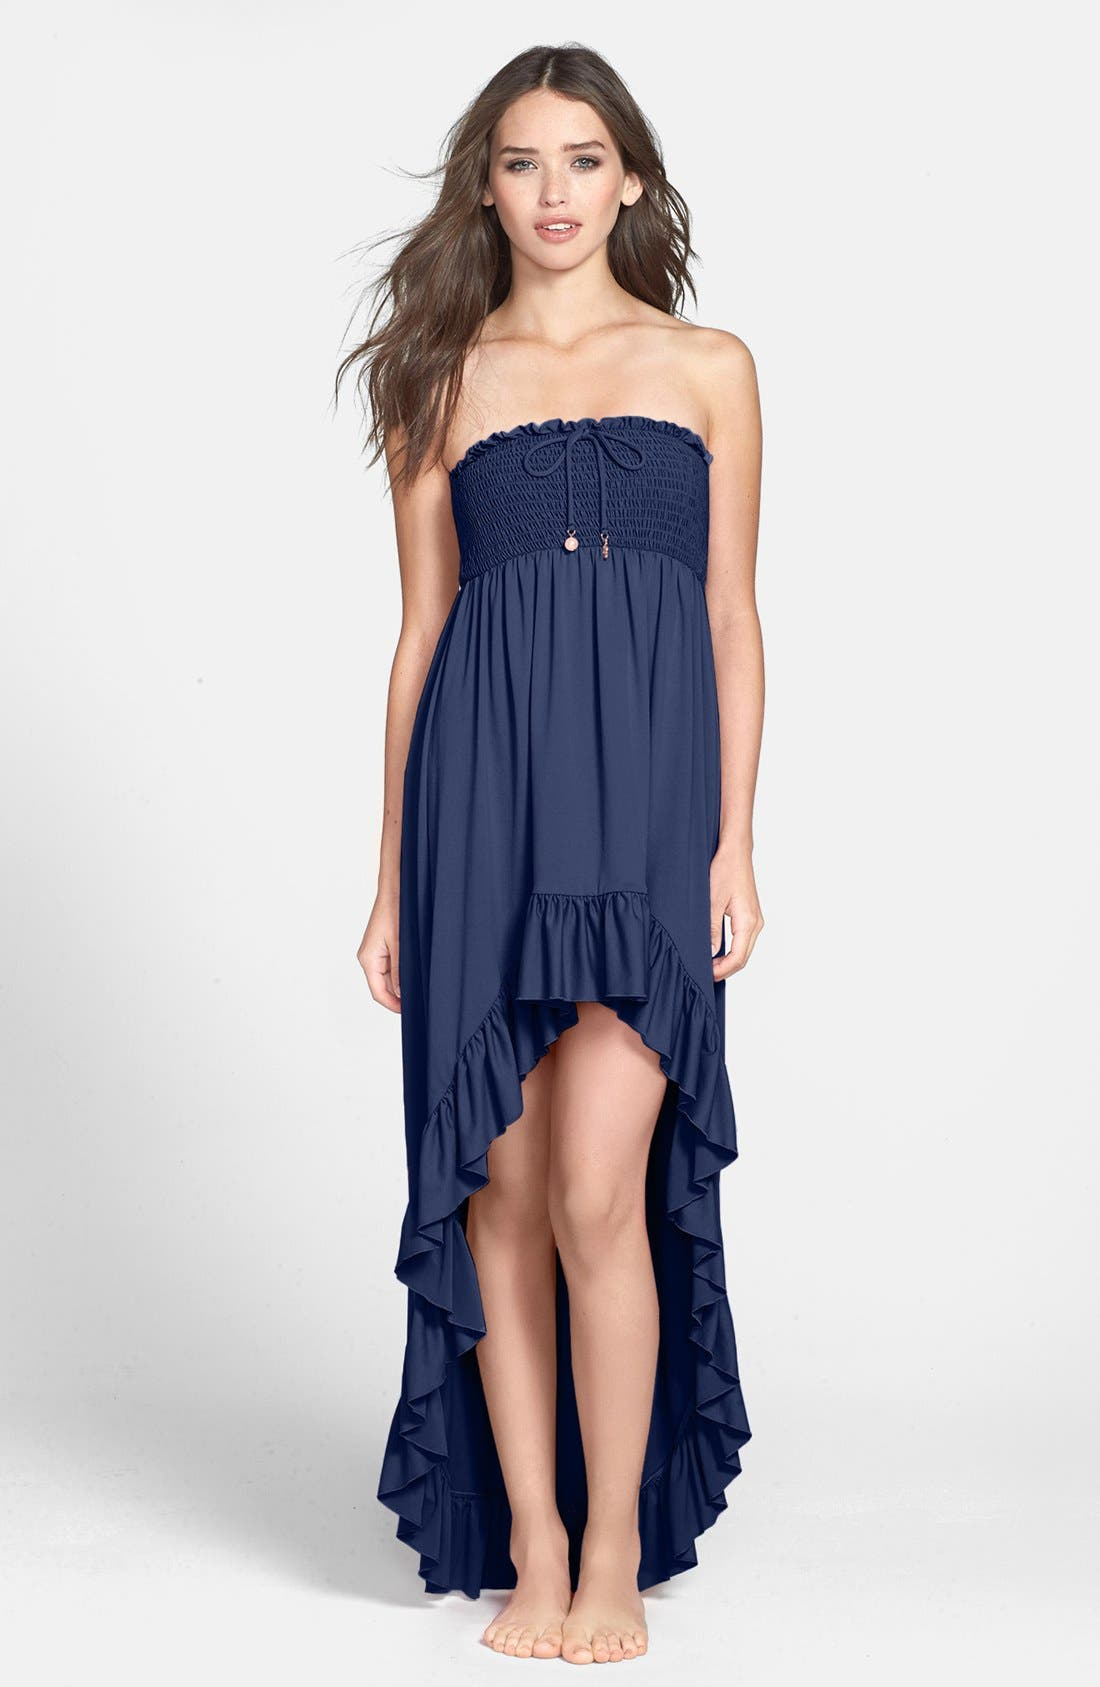 Alternate Image 1 Selected - Juicy Couture Beach 'Bow Chic' Smocked High/Low Cover-Up Dress